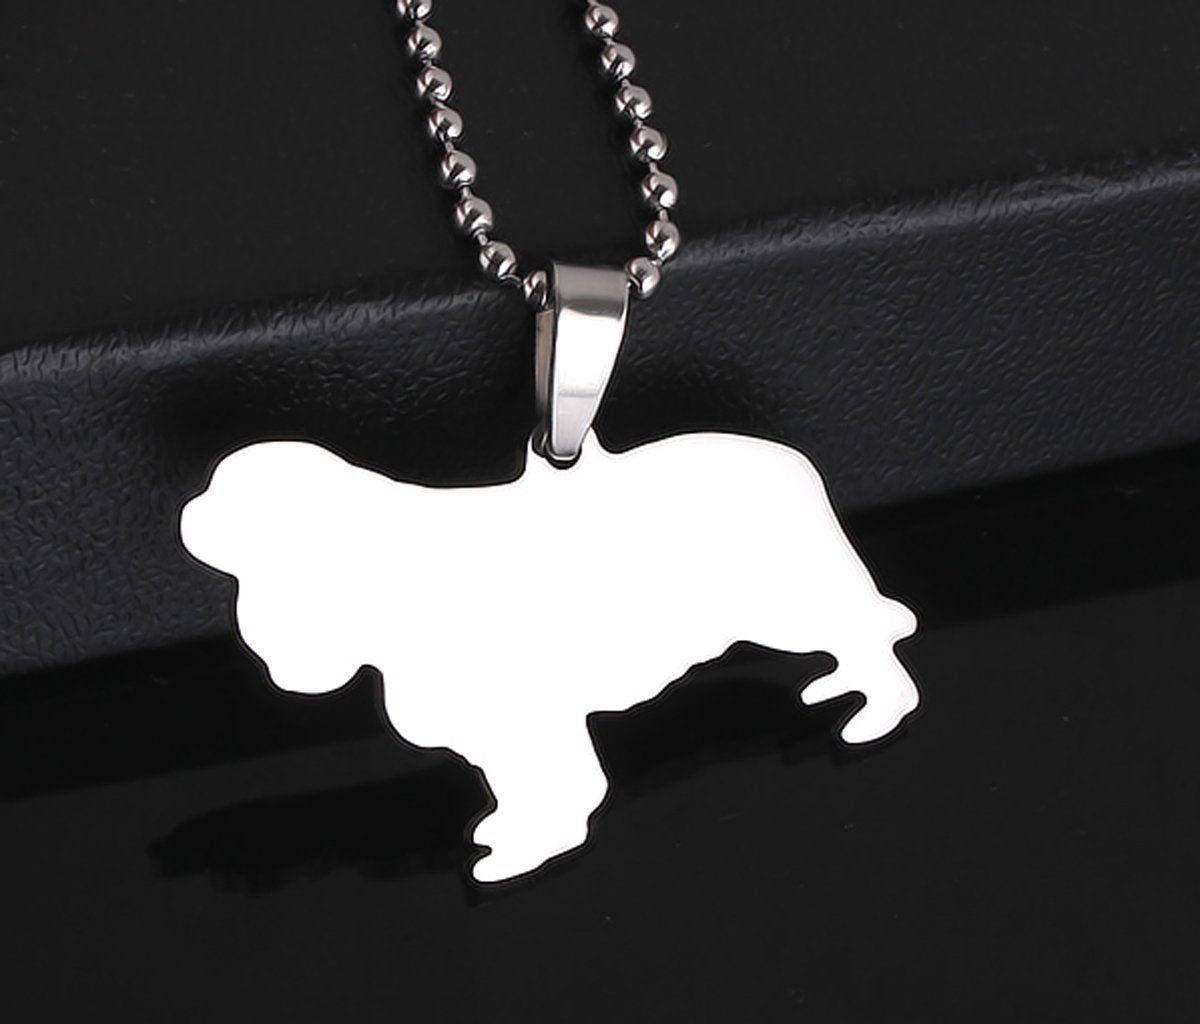 Stainless Steel Cavalier King Charles Spaniel Sillouette Pet Dog Tag Breed Collar Charm Pendant